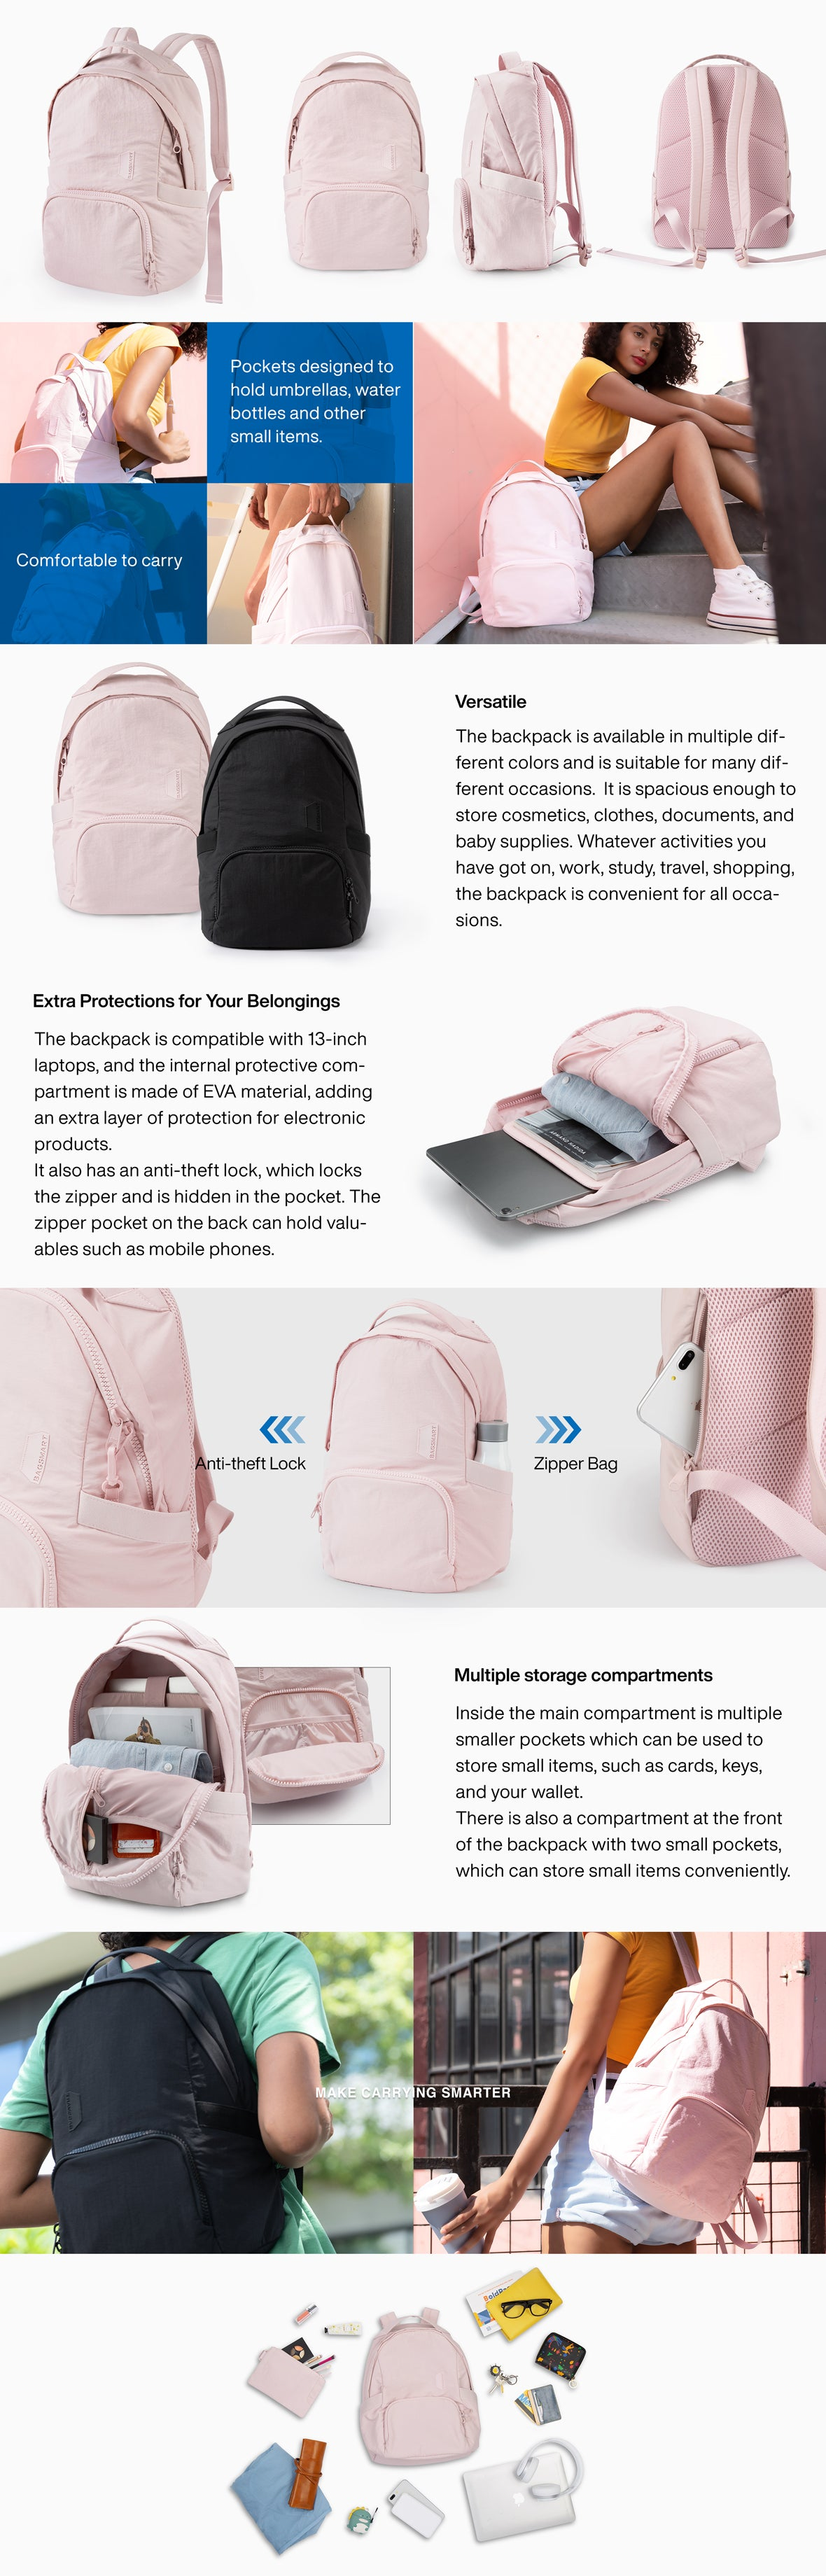 Zoraesque Style Backpack   Bagsmart 2020SS